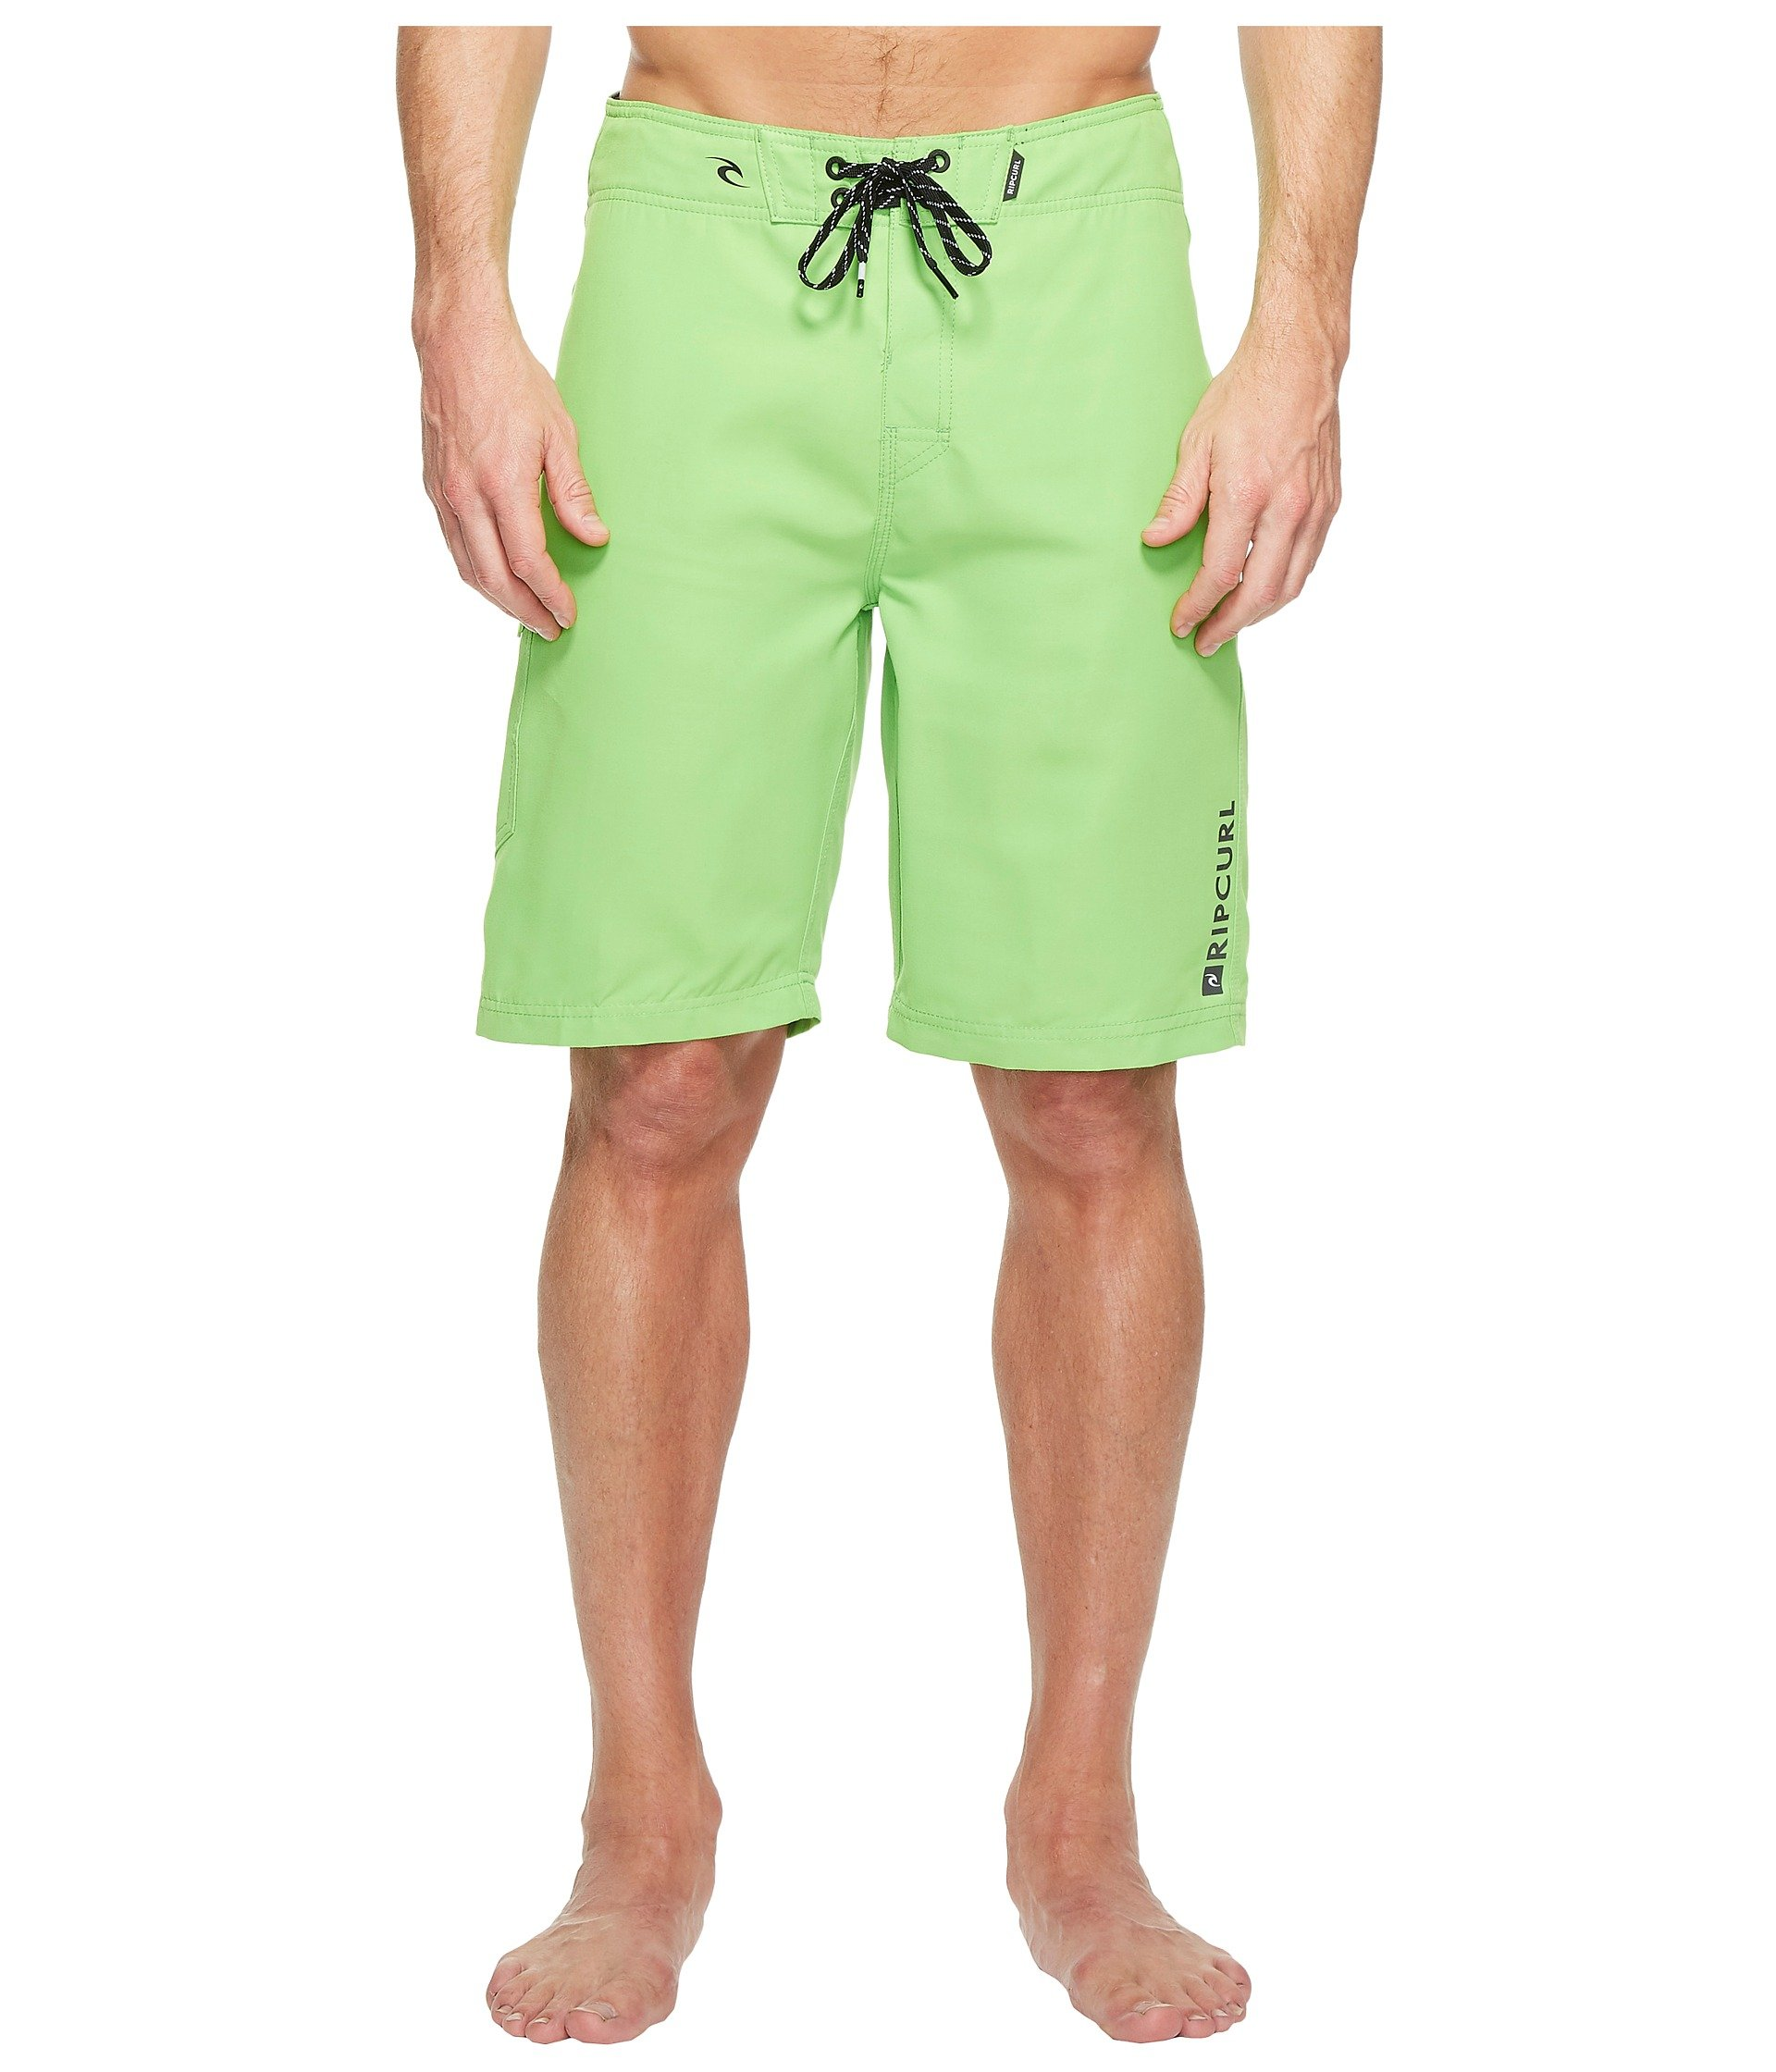 Boardshorts Green 0 2 Curl Rip Time All xTOTS4